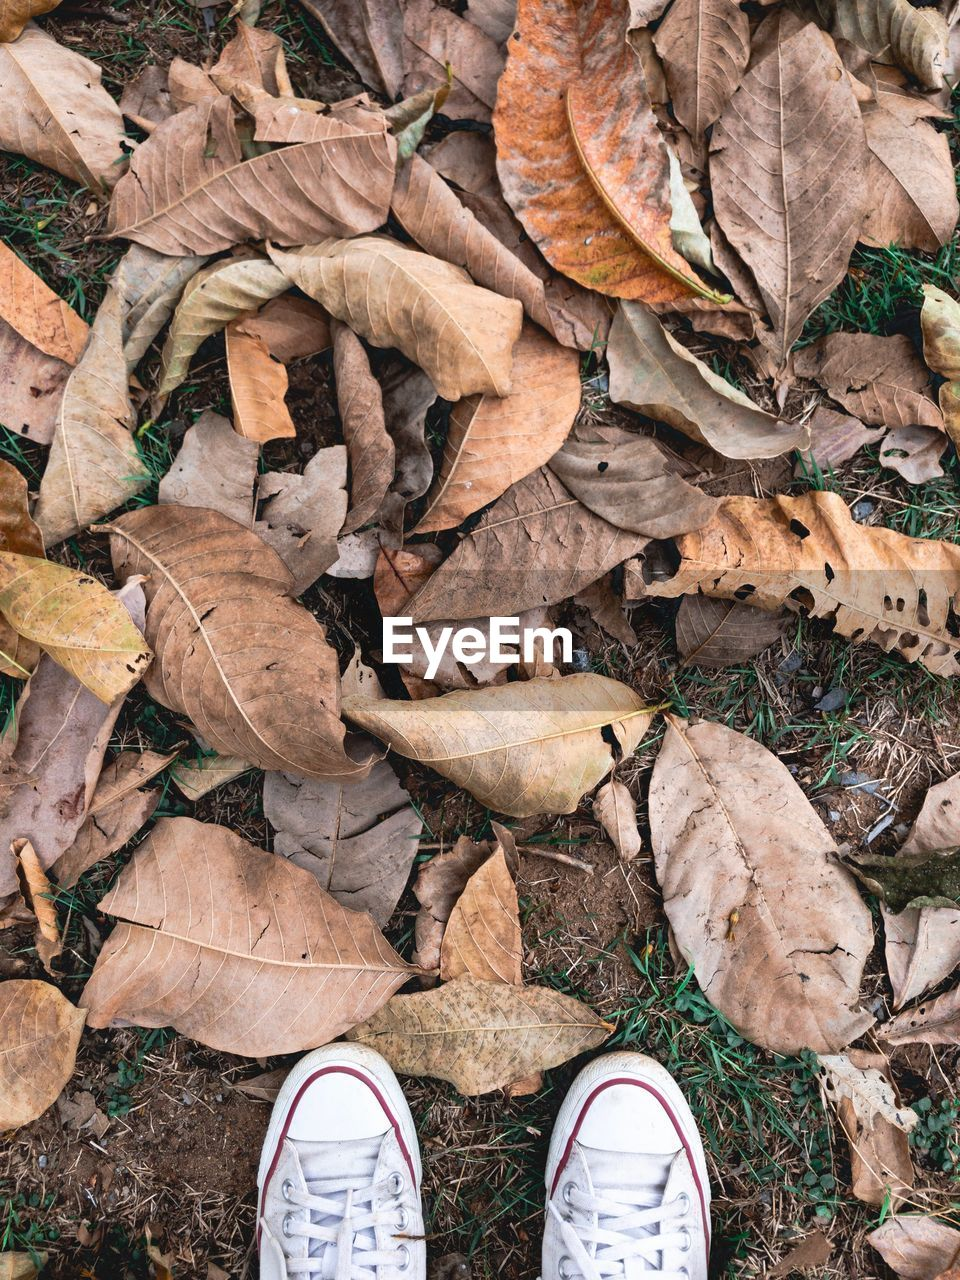 low section, plant part, leaf, autumn, dry, human leg, shoe, personal perspective, leaves, land, body part, field, high angle view, nature, real people, day, human body part, change, one person, unrecognizable person, outdoors, human foot, messy, human limb, dried, finger